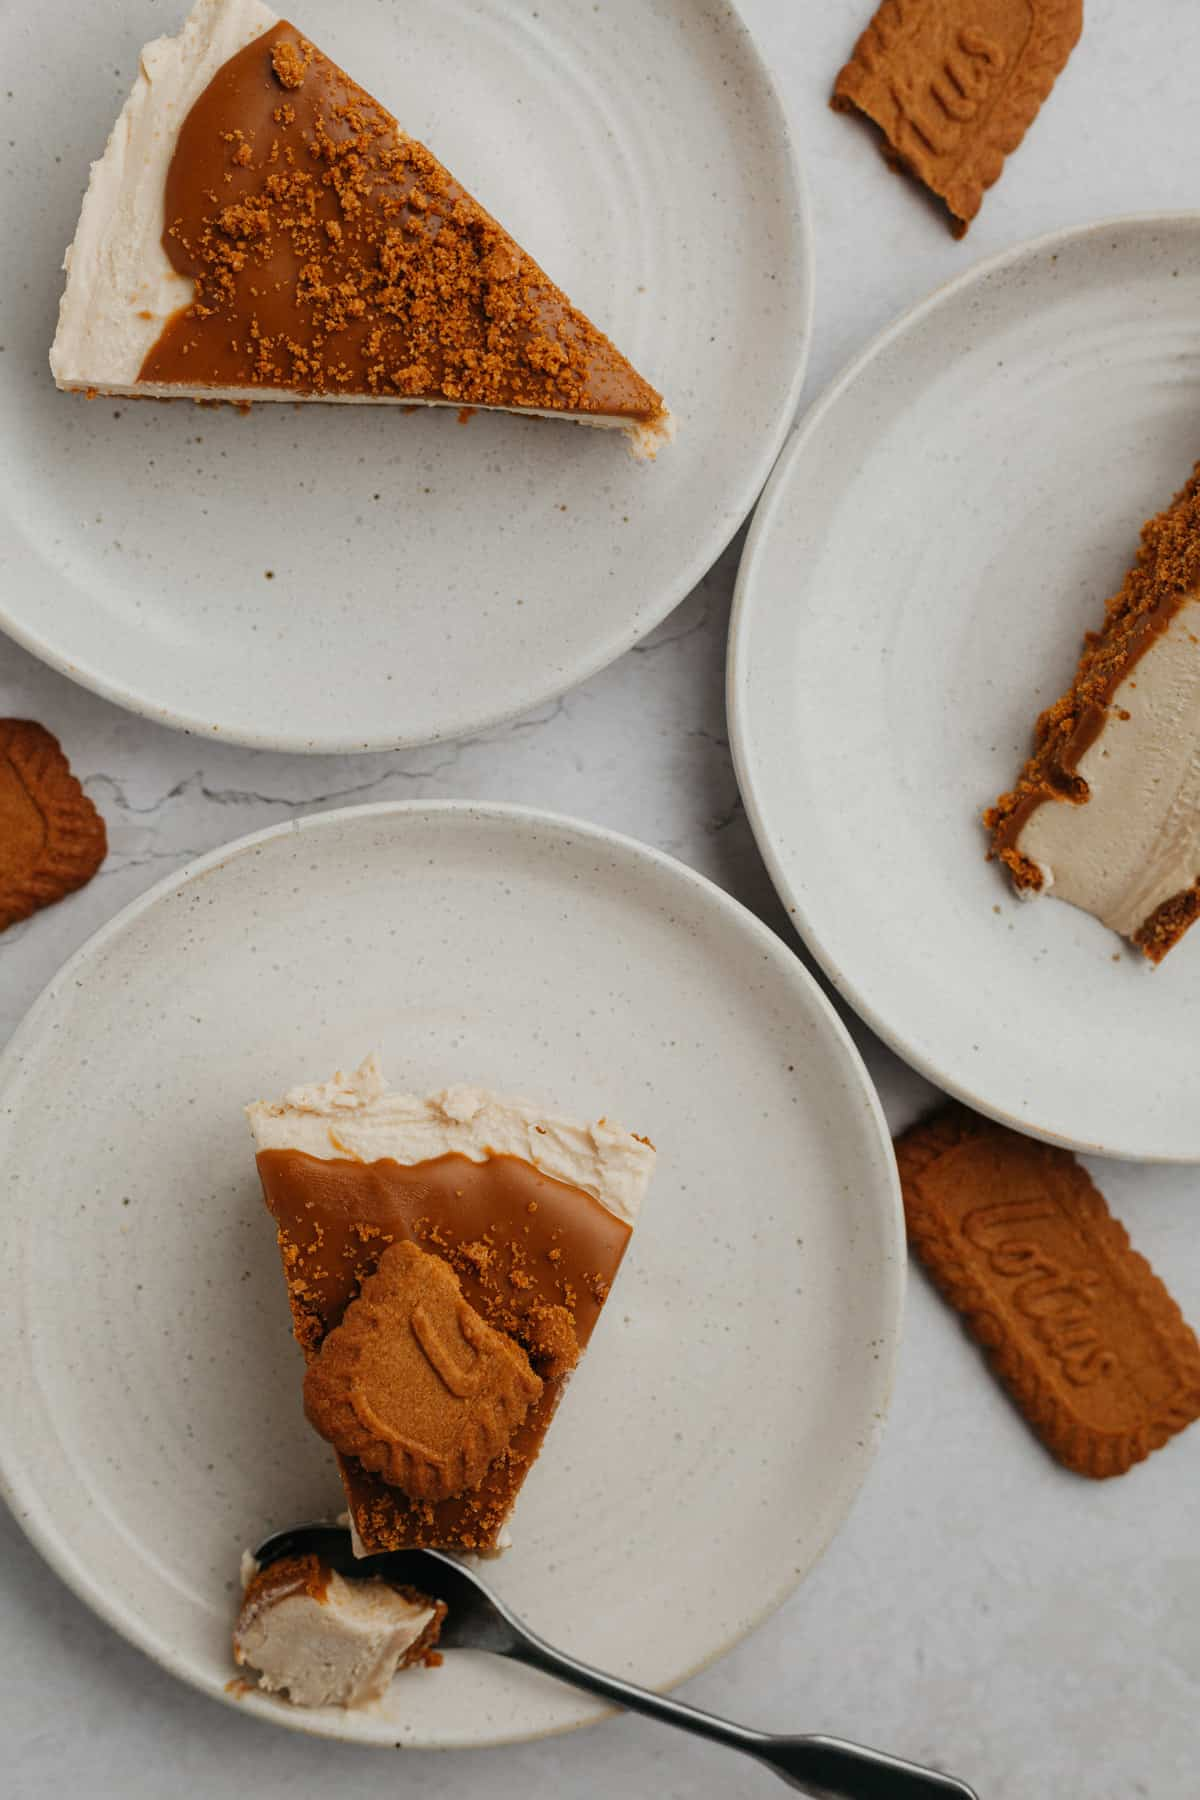 Three small plates, each one has a slice of biscoff cheesecake